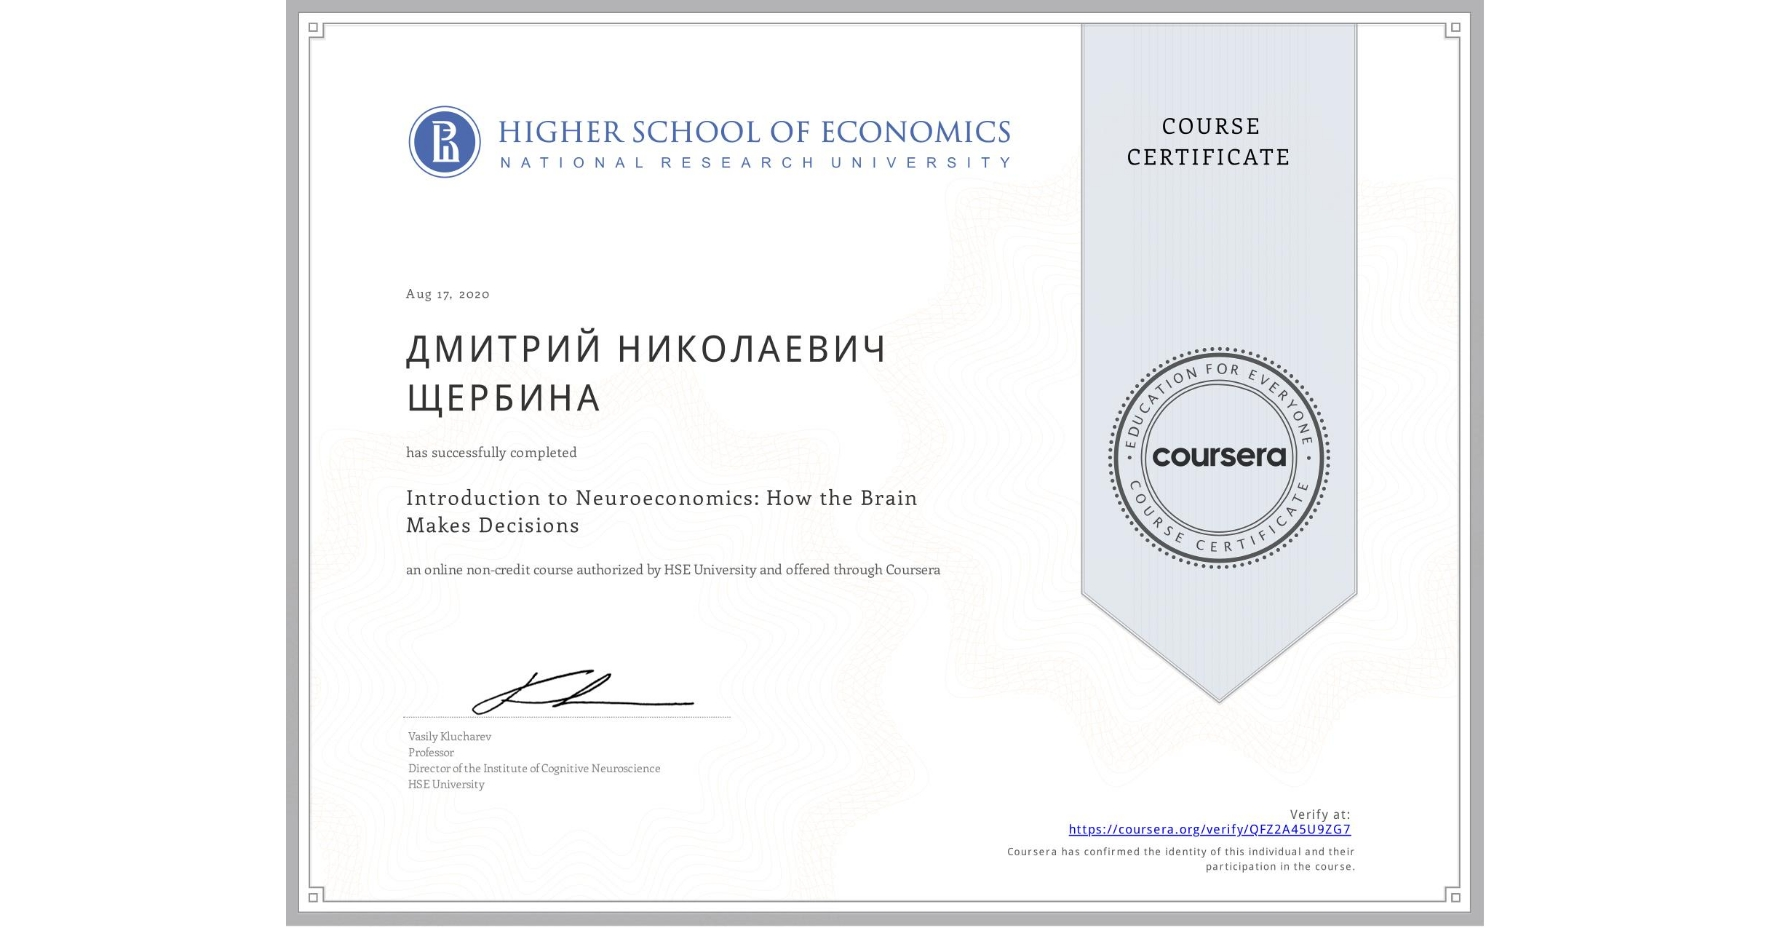 View certificate for ДМИТРИЙ НИКОЛАЕВИЧ ЩЕРБИНА, Introduction to Neuroeconomics: How the Brain Makes Decisions, an online non-credit course authorized by HSE University and offered through Coursera